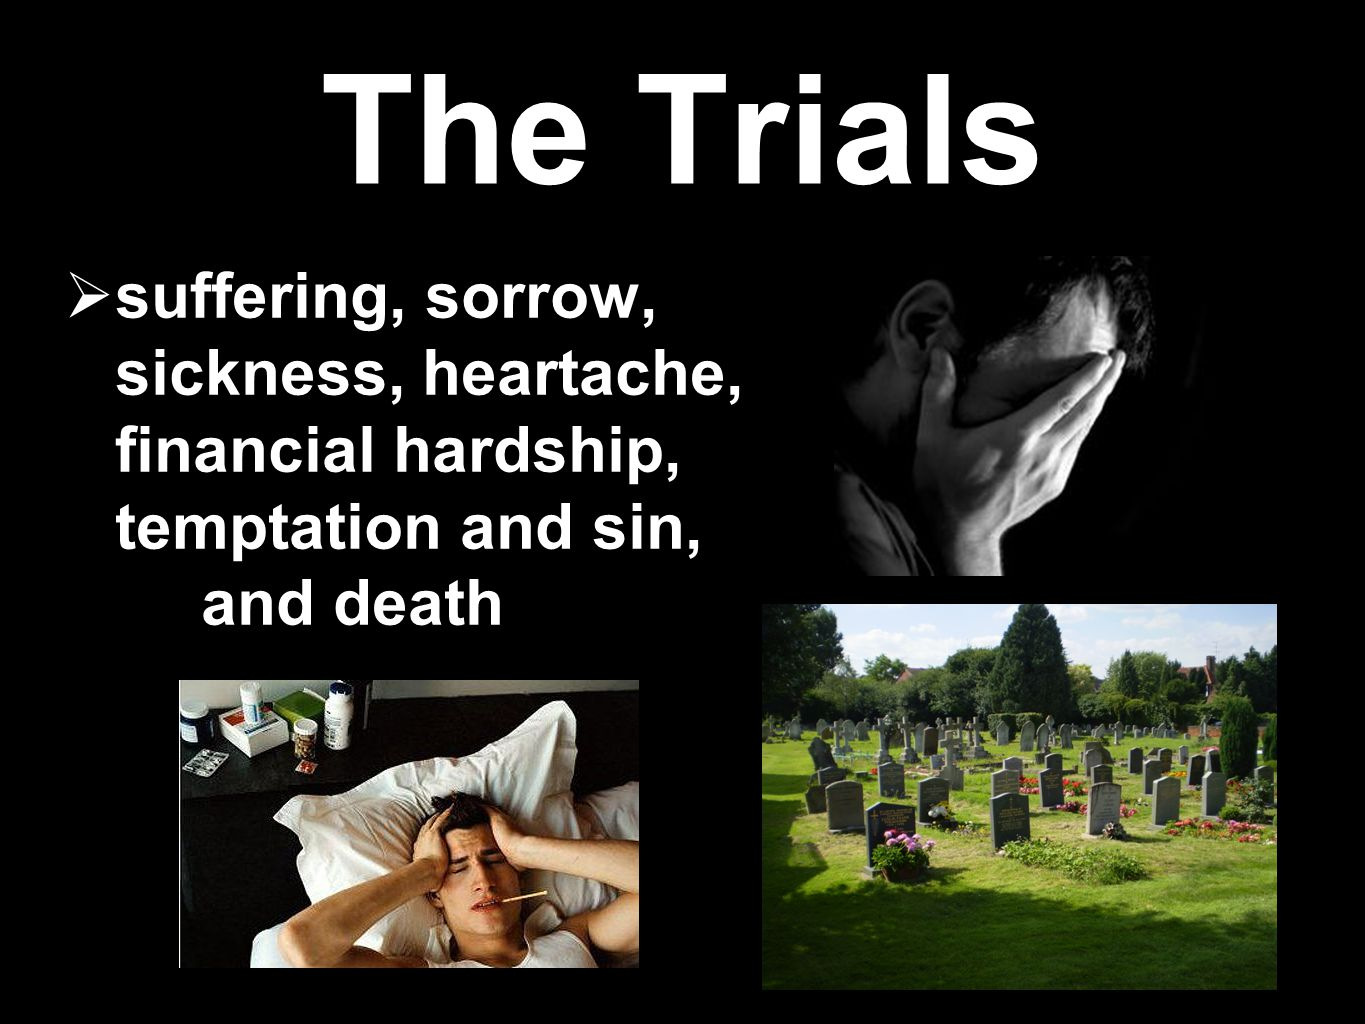 The Trials suffering, sorrow, sickness, heartache, financial hardship, temptation and sin, and death.